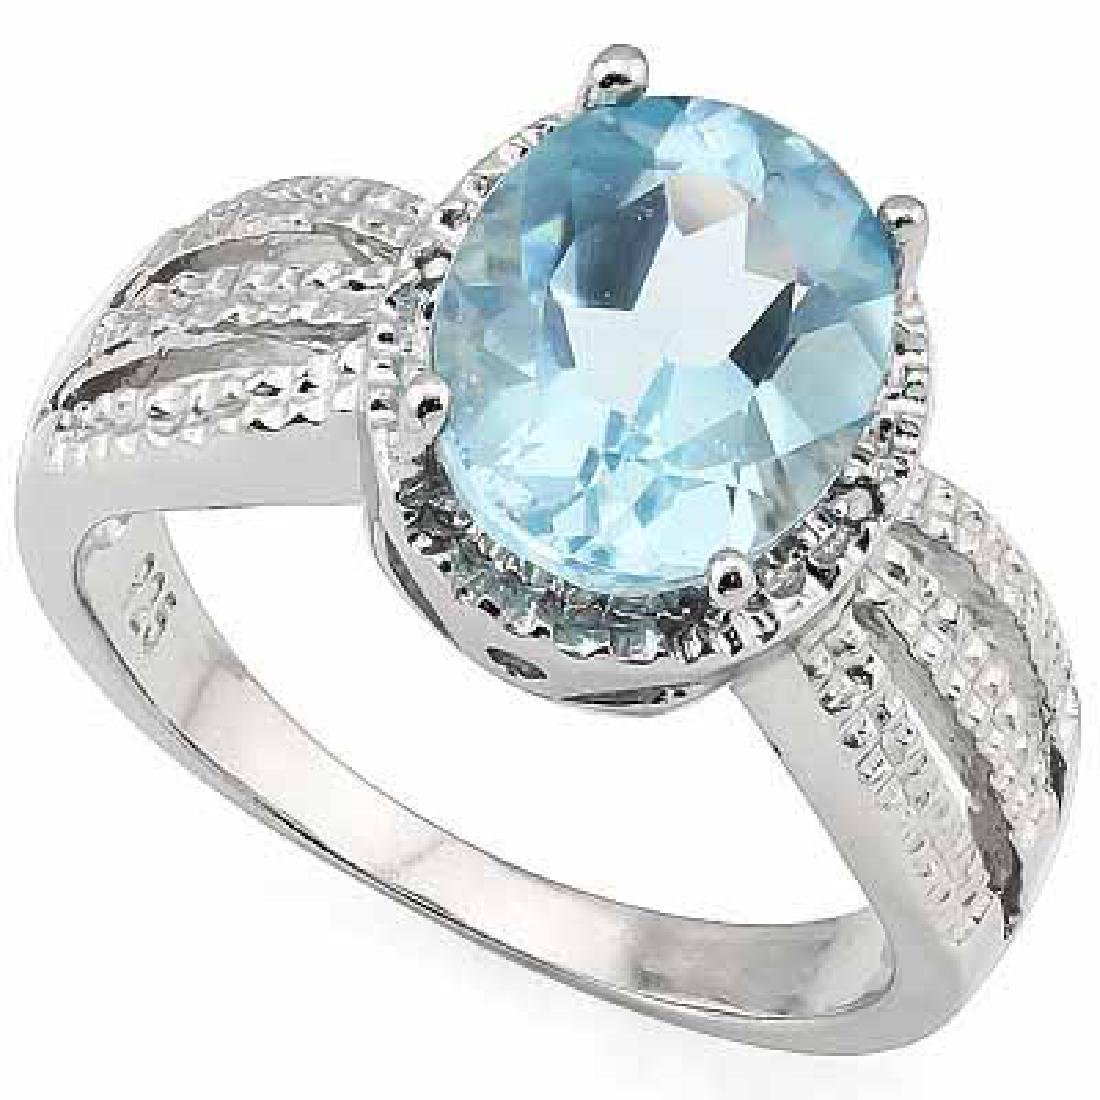 3.19 CARAT TW (3 PCS) BLUE TOPAZ & GENUINE DIAMOND PLAT